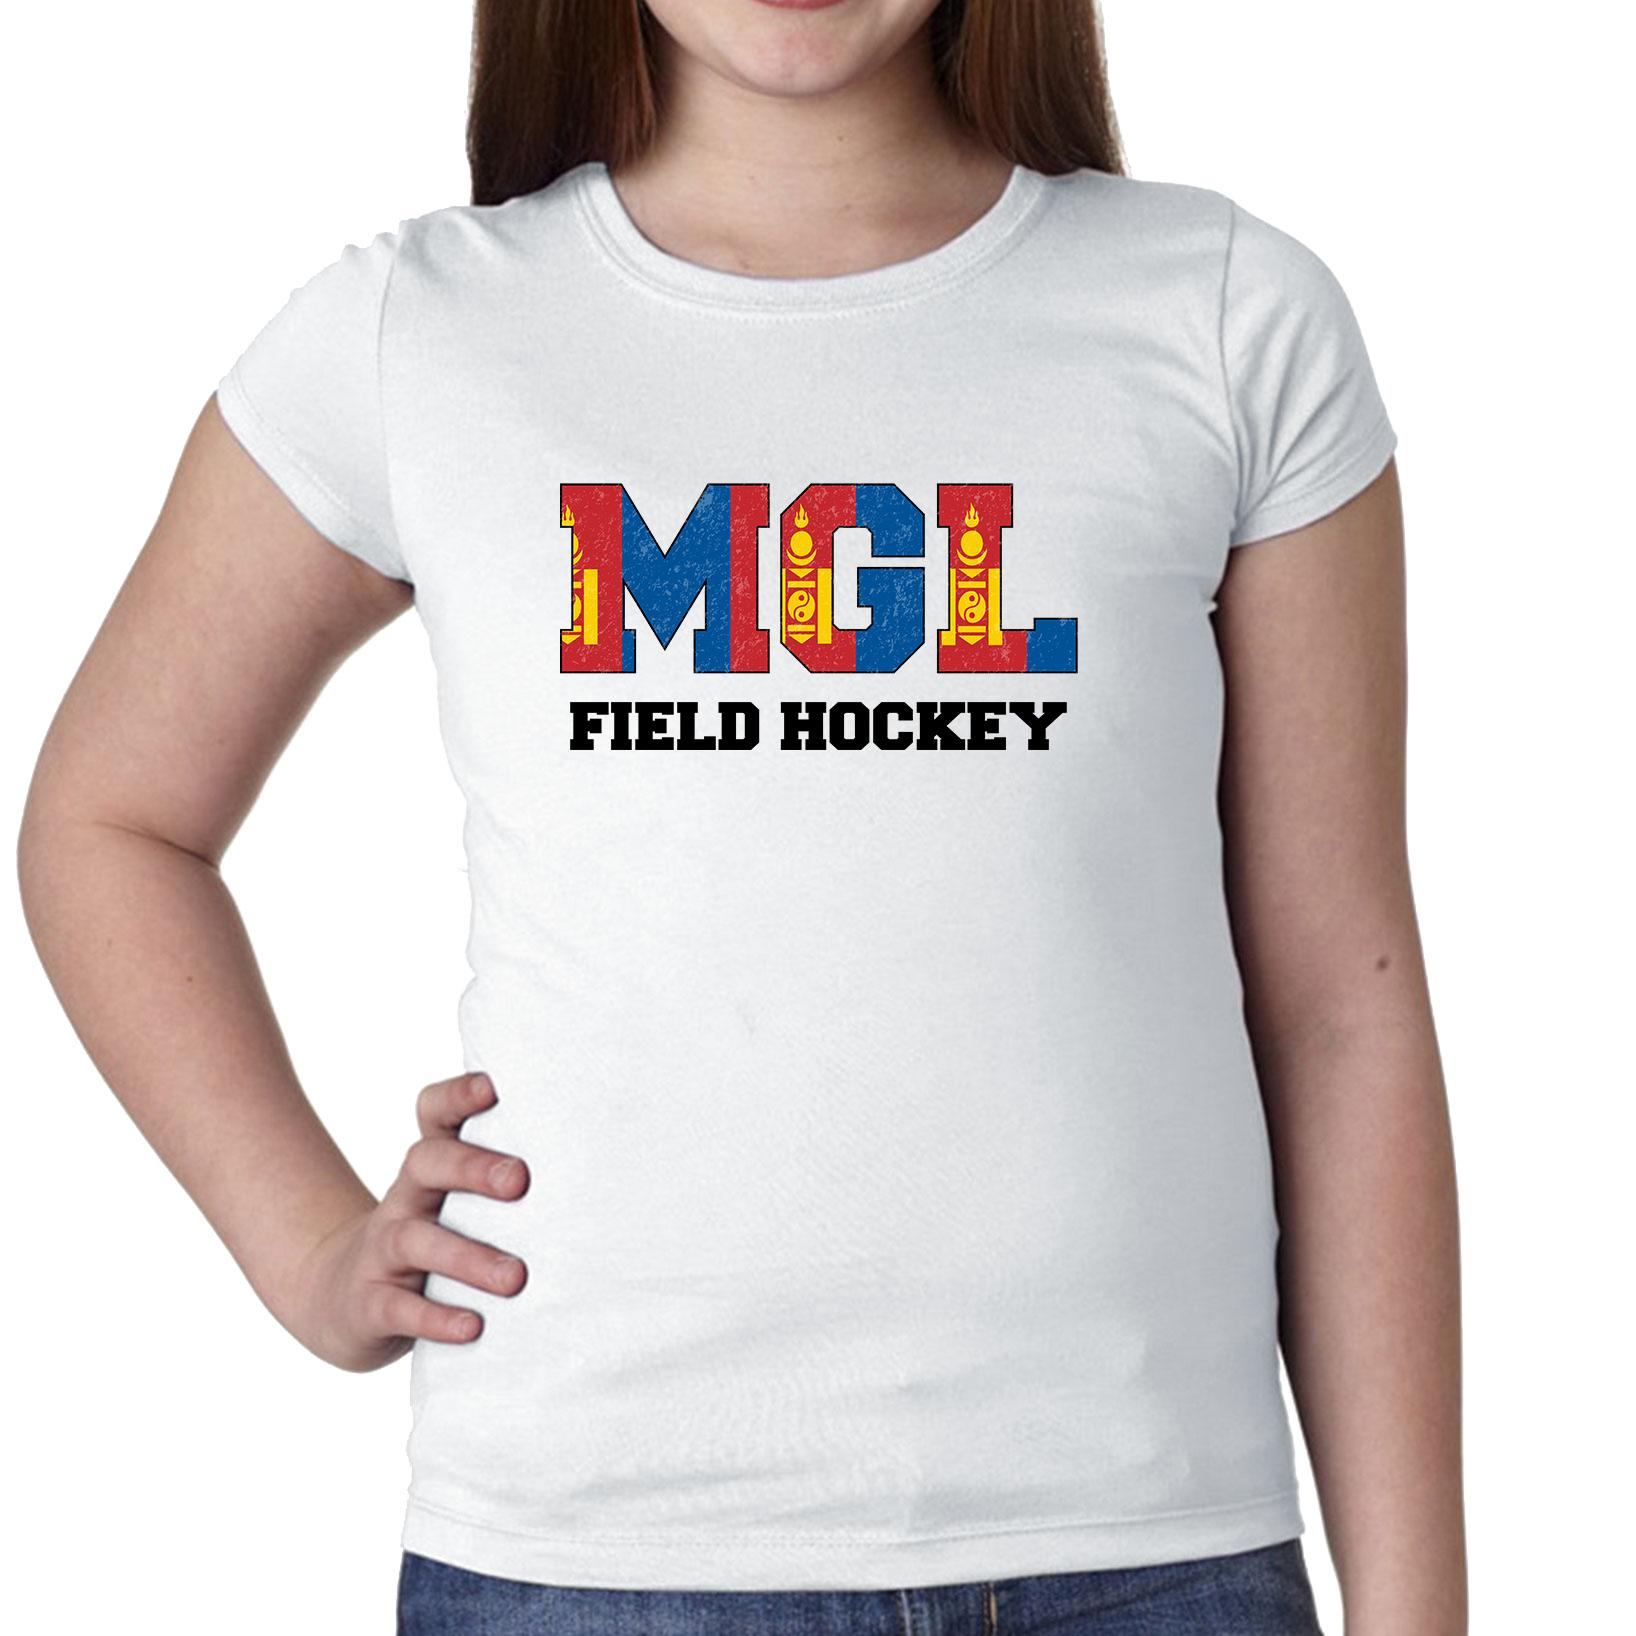 Mongolia Hockey Olympic Games Rio Flag Girl's Cotton Youth T-Shirt by Hollywood Thread